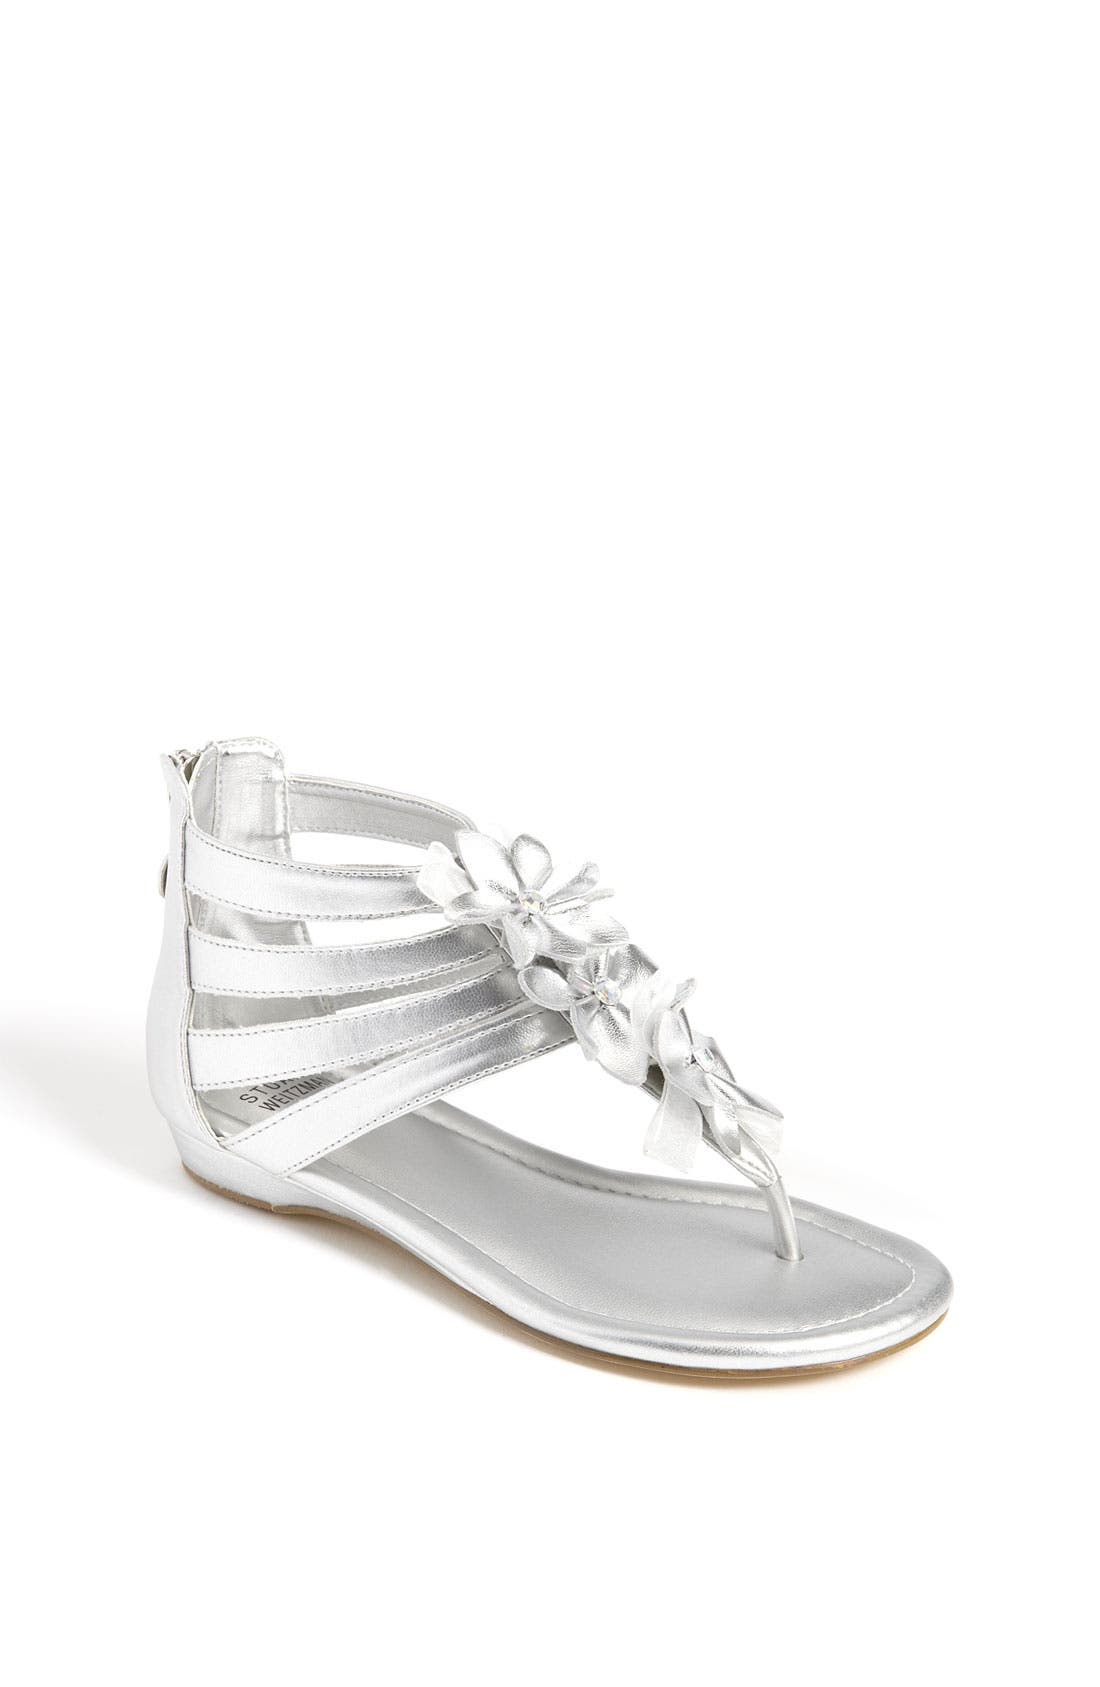 Main Image - Stuart Weitzman 'Amore' Sandal (Toddler, Little Kid & Big Kid)